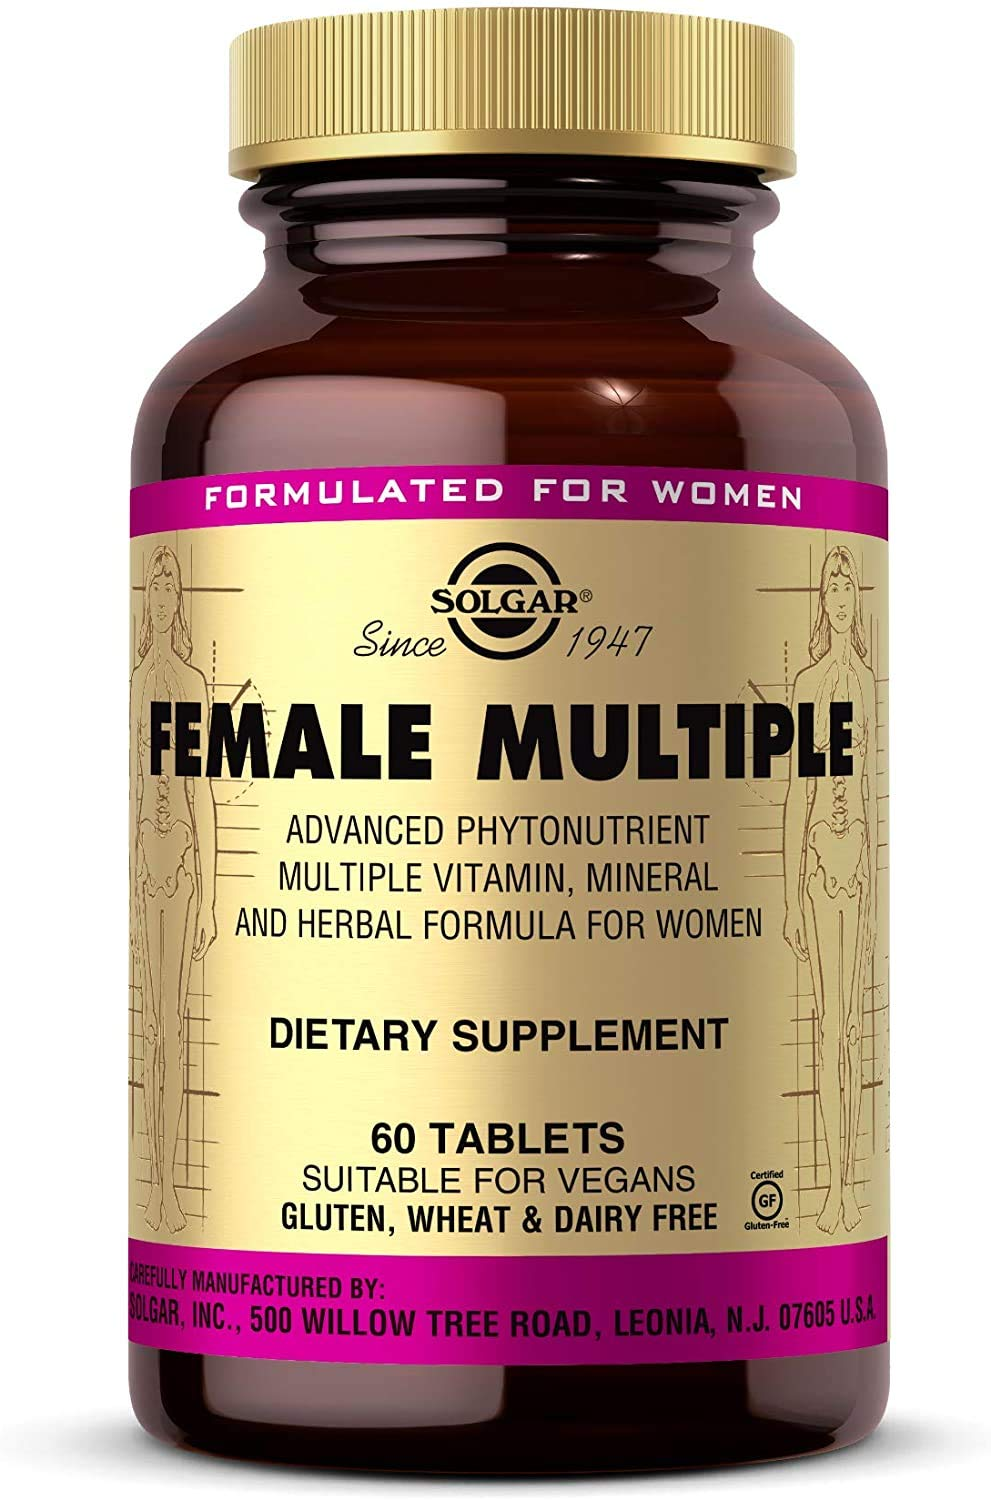 Solgar Female Multiple, 60 Tablets - Multivitamin, Mineral & Herbal Formula for Women - Advanced Phytonutrient - Vegan, Gluten Free, Dairy Free, Kosher - 20 Servings